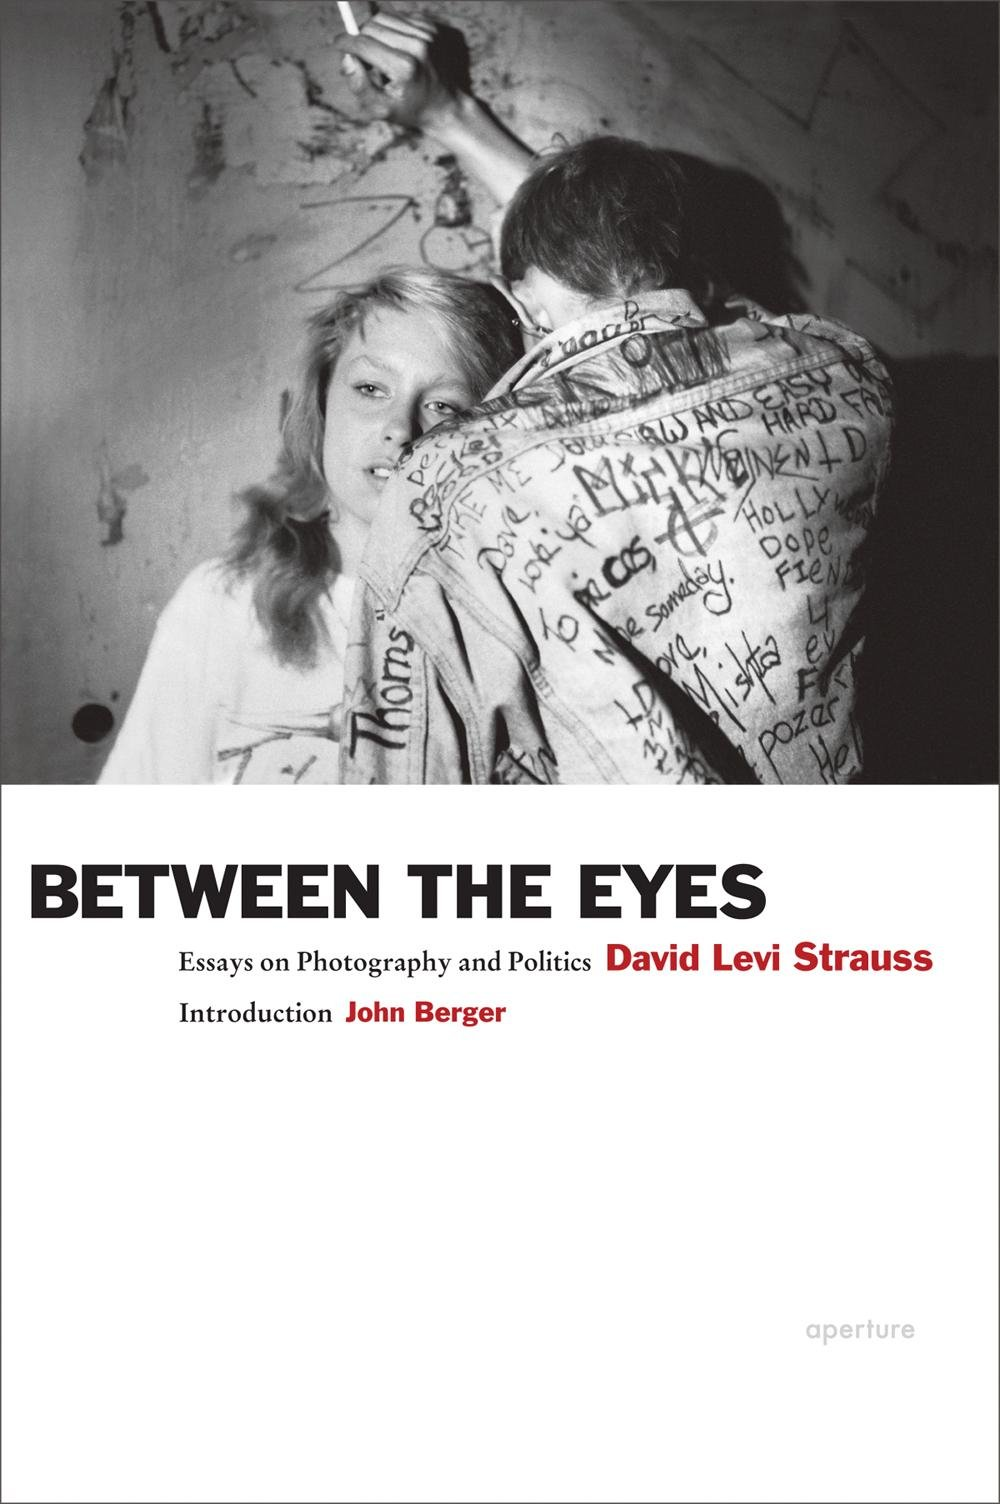 com david levi strauss between the eyes essays on com david levi strauss between the eyes essays on photography and politics 9781597112147 david levi strauss john berger books